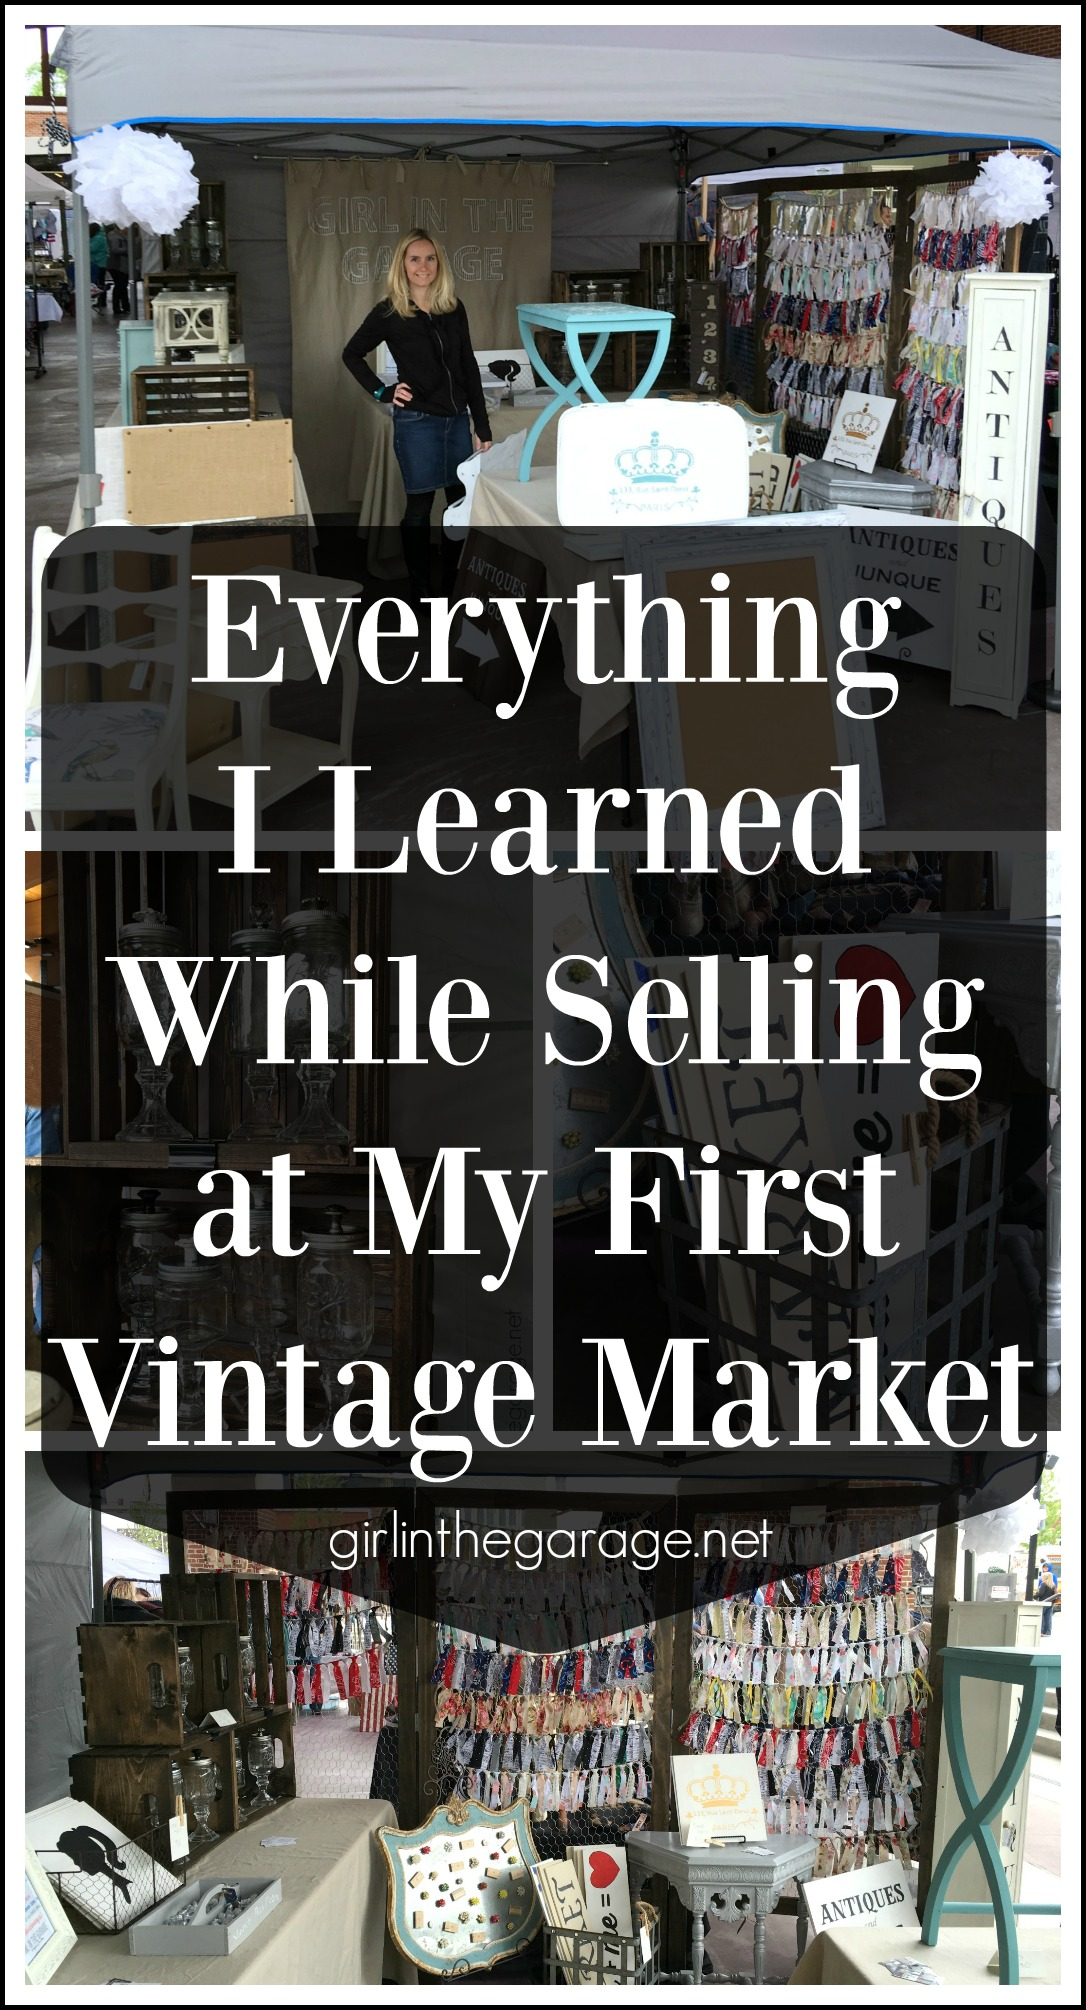 Everything I learned while selling at my first vintage market! Girl in the Garage